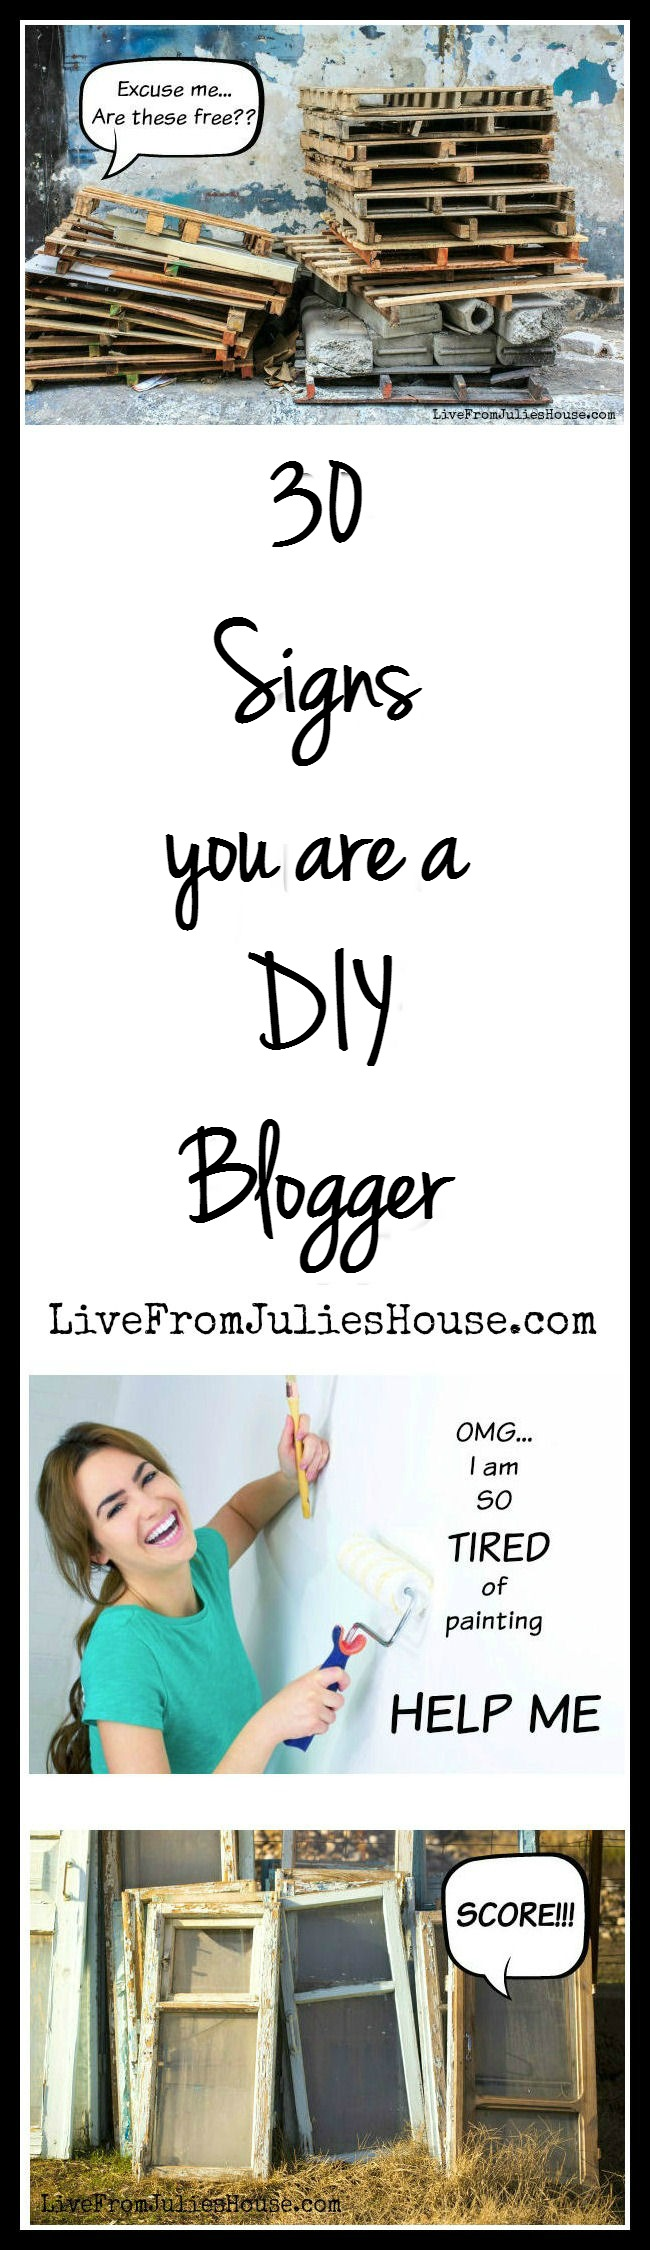 30 Signs You are a DIY Blogger -Do you collect spray paint and orphan furniture? Are home improvement projects your idea of a rockin' Friday night? You might be a DIY blogger